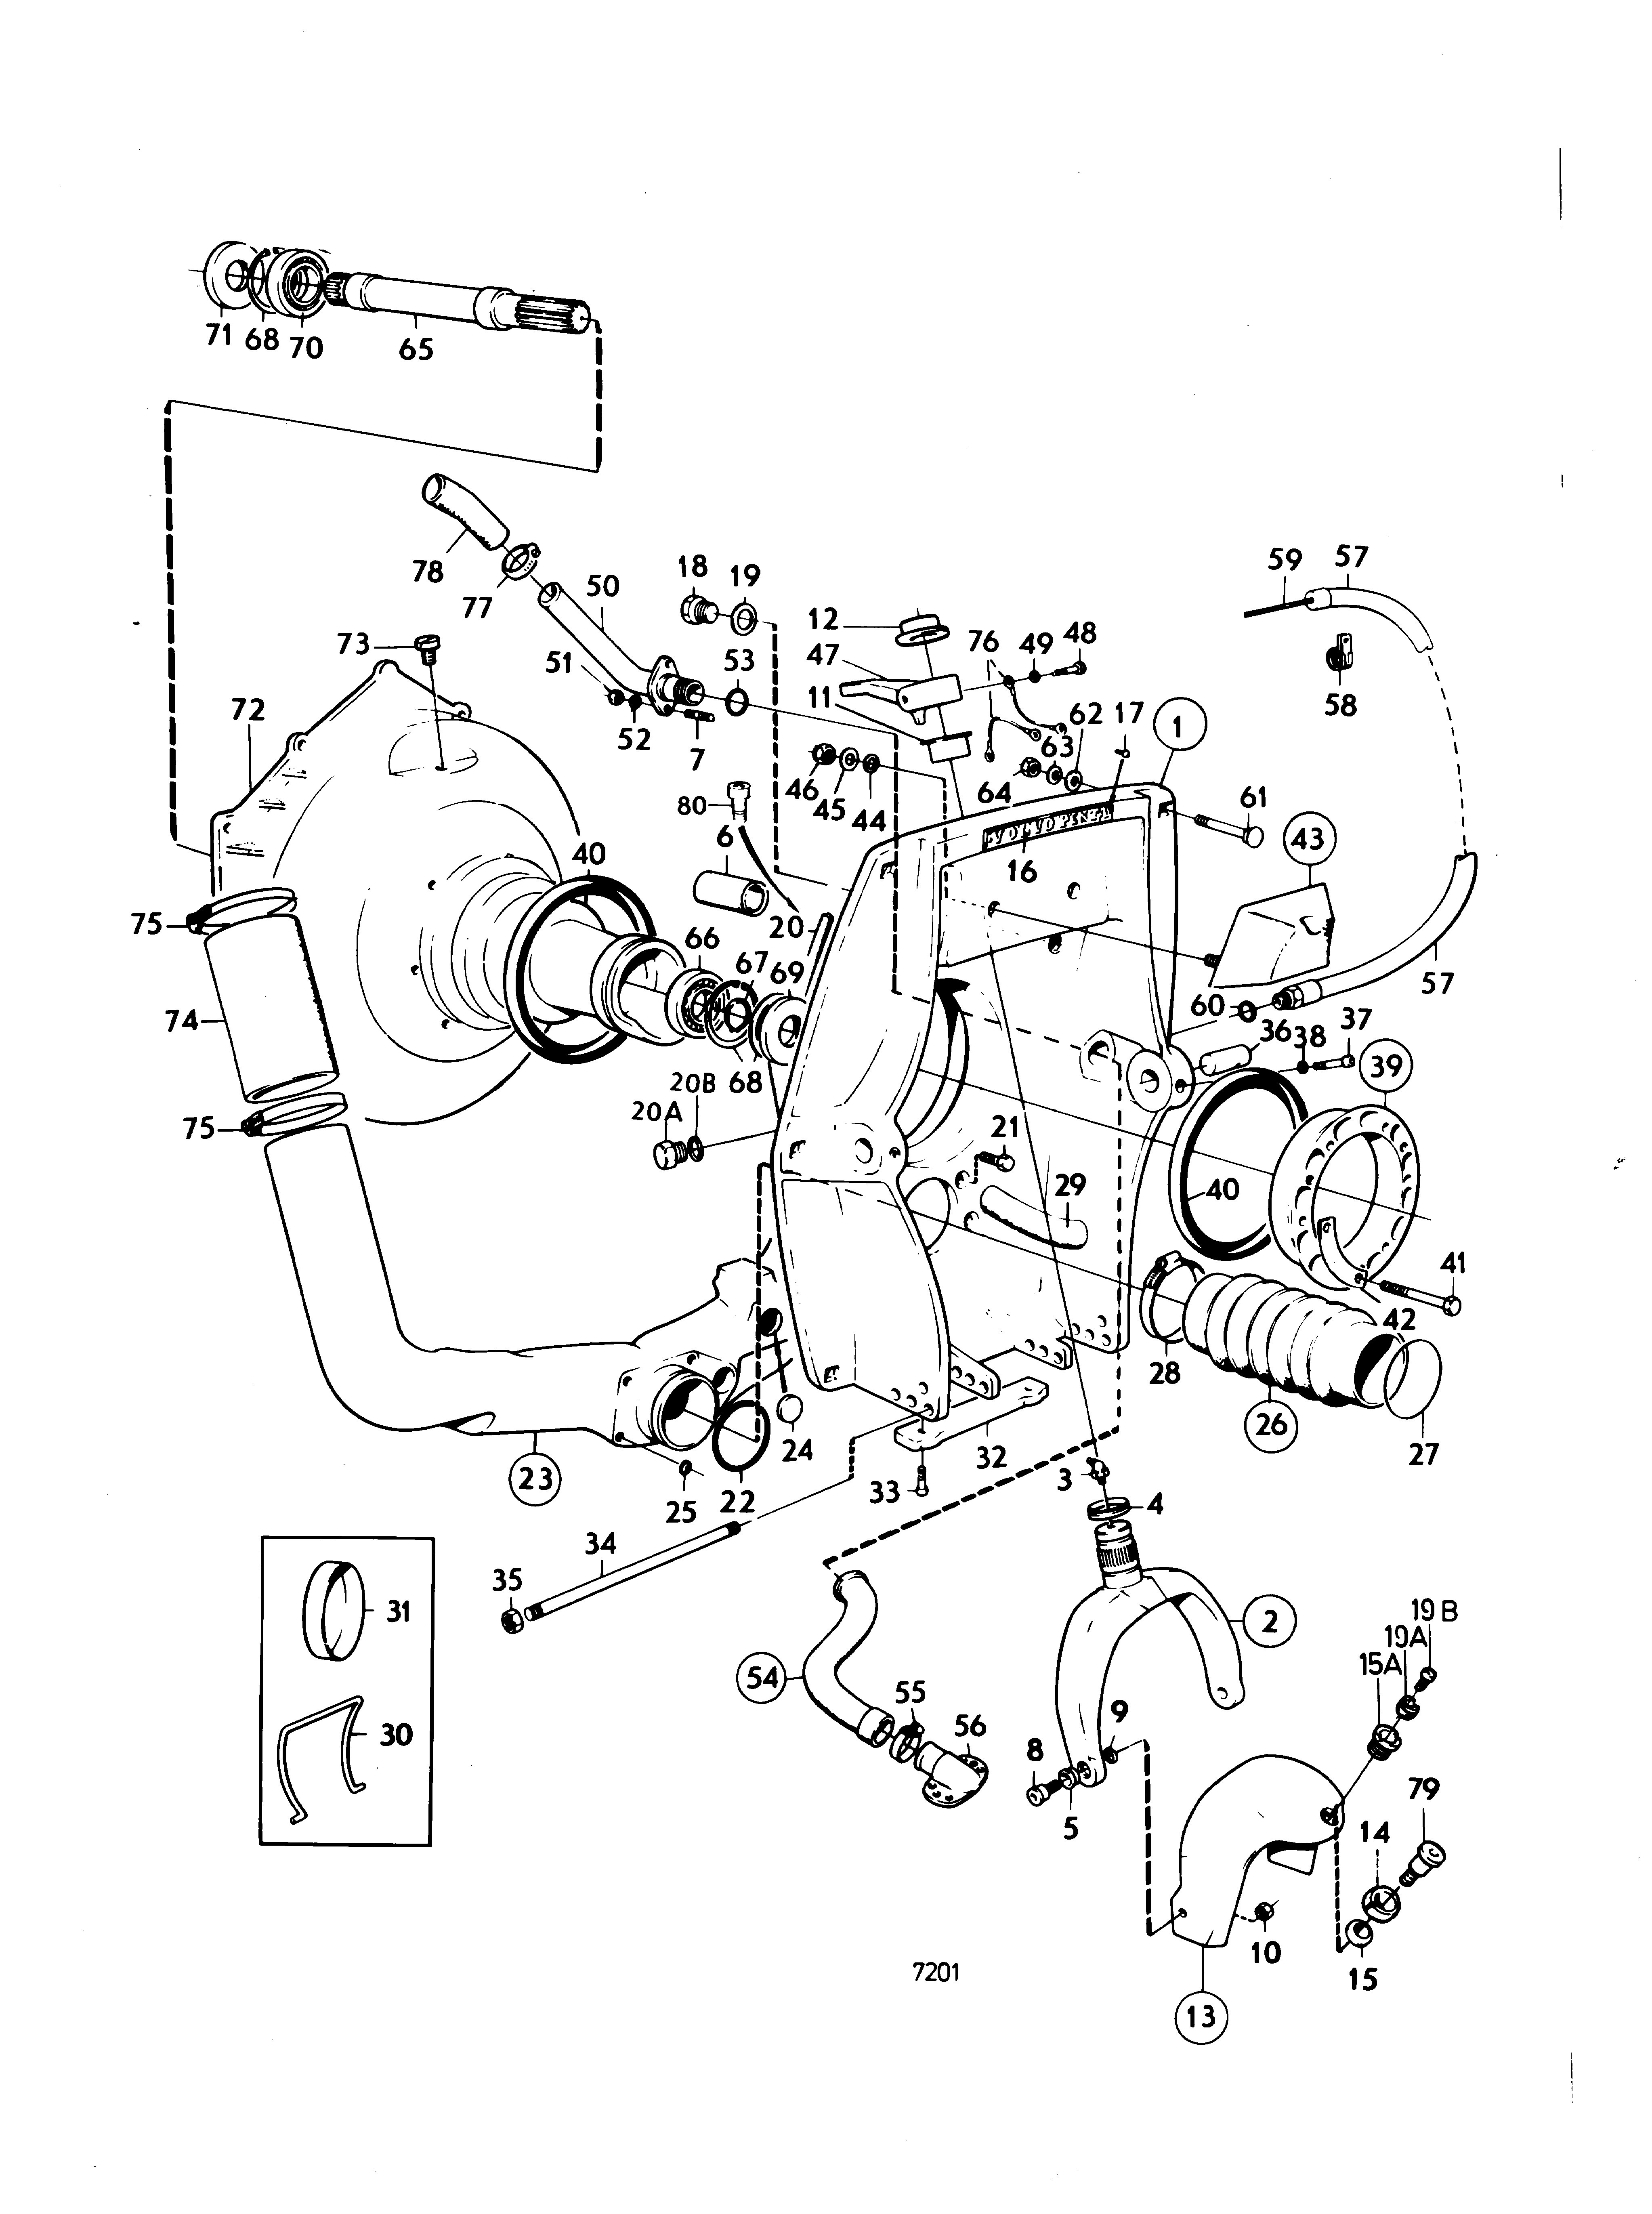 Gm Parts Diagrams Exploded Views Suspension Gm Parts Search Diagram Car Wiring Diagrams Explained • Of Gm Parts Diagrams Exploded Views